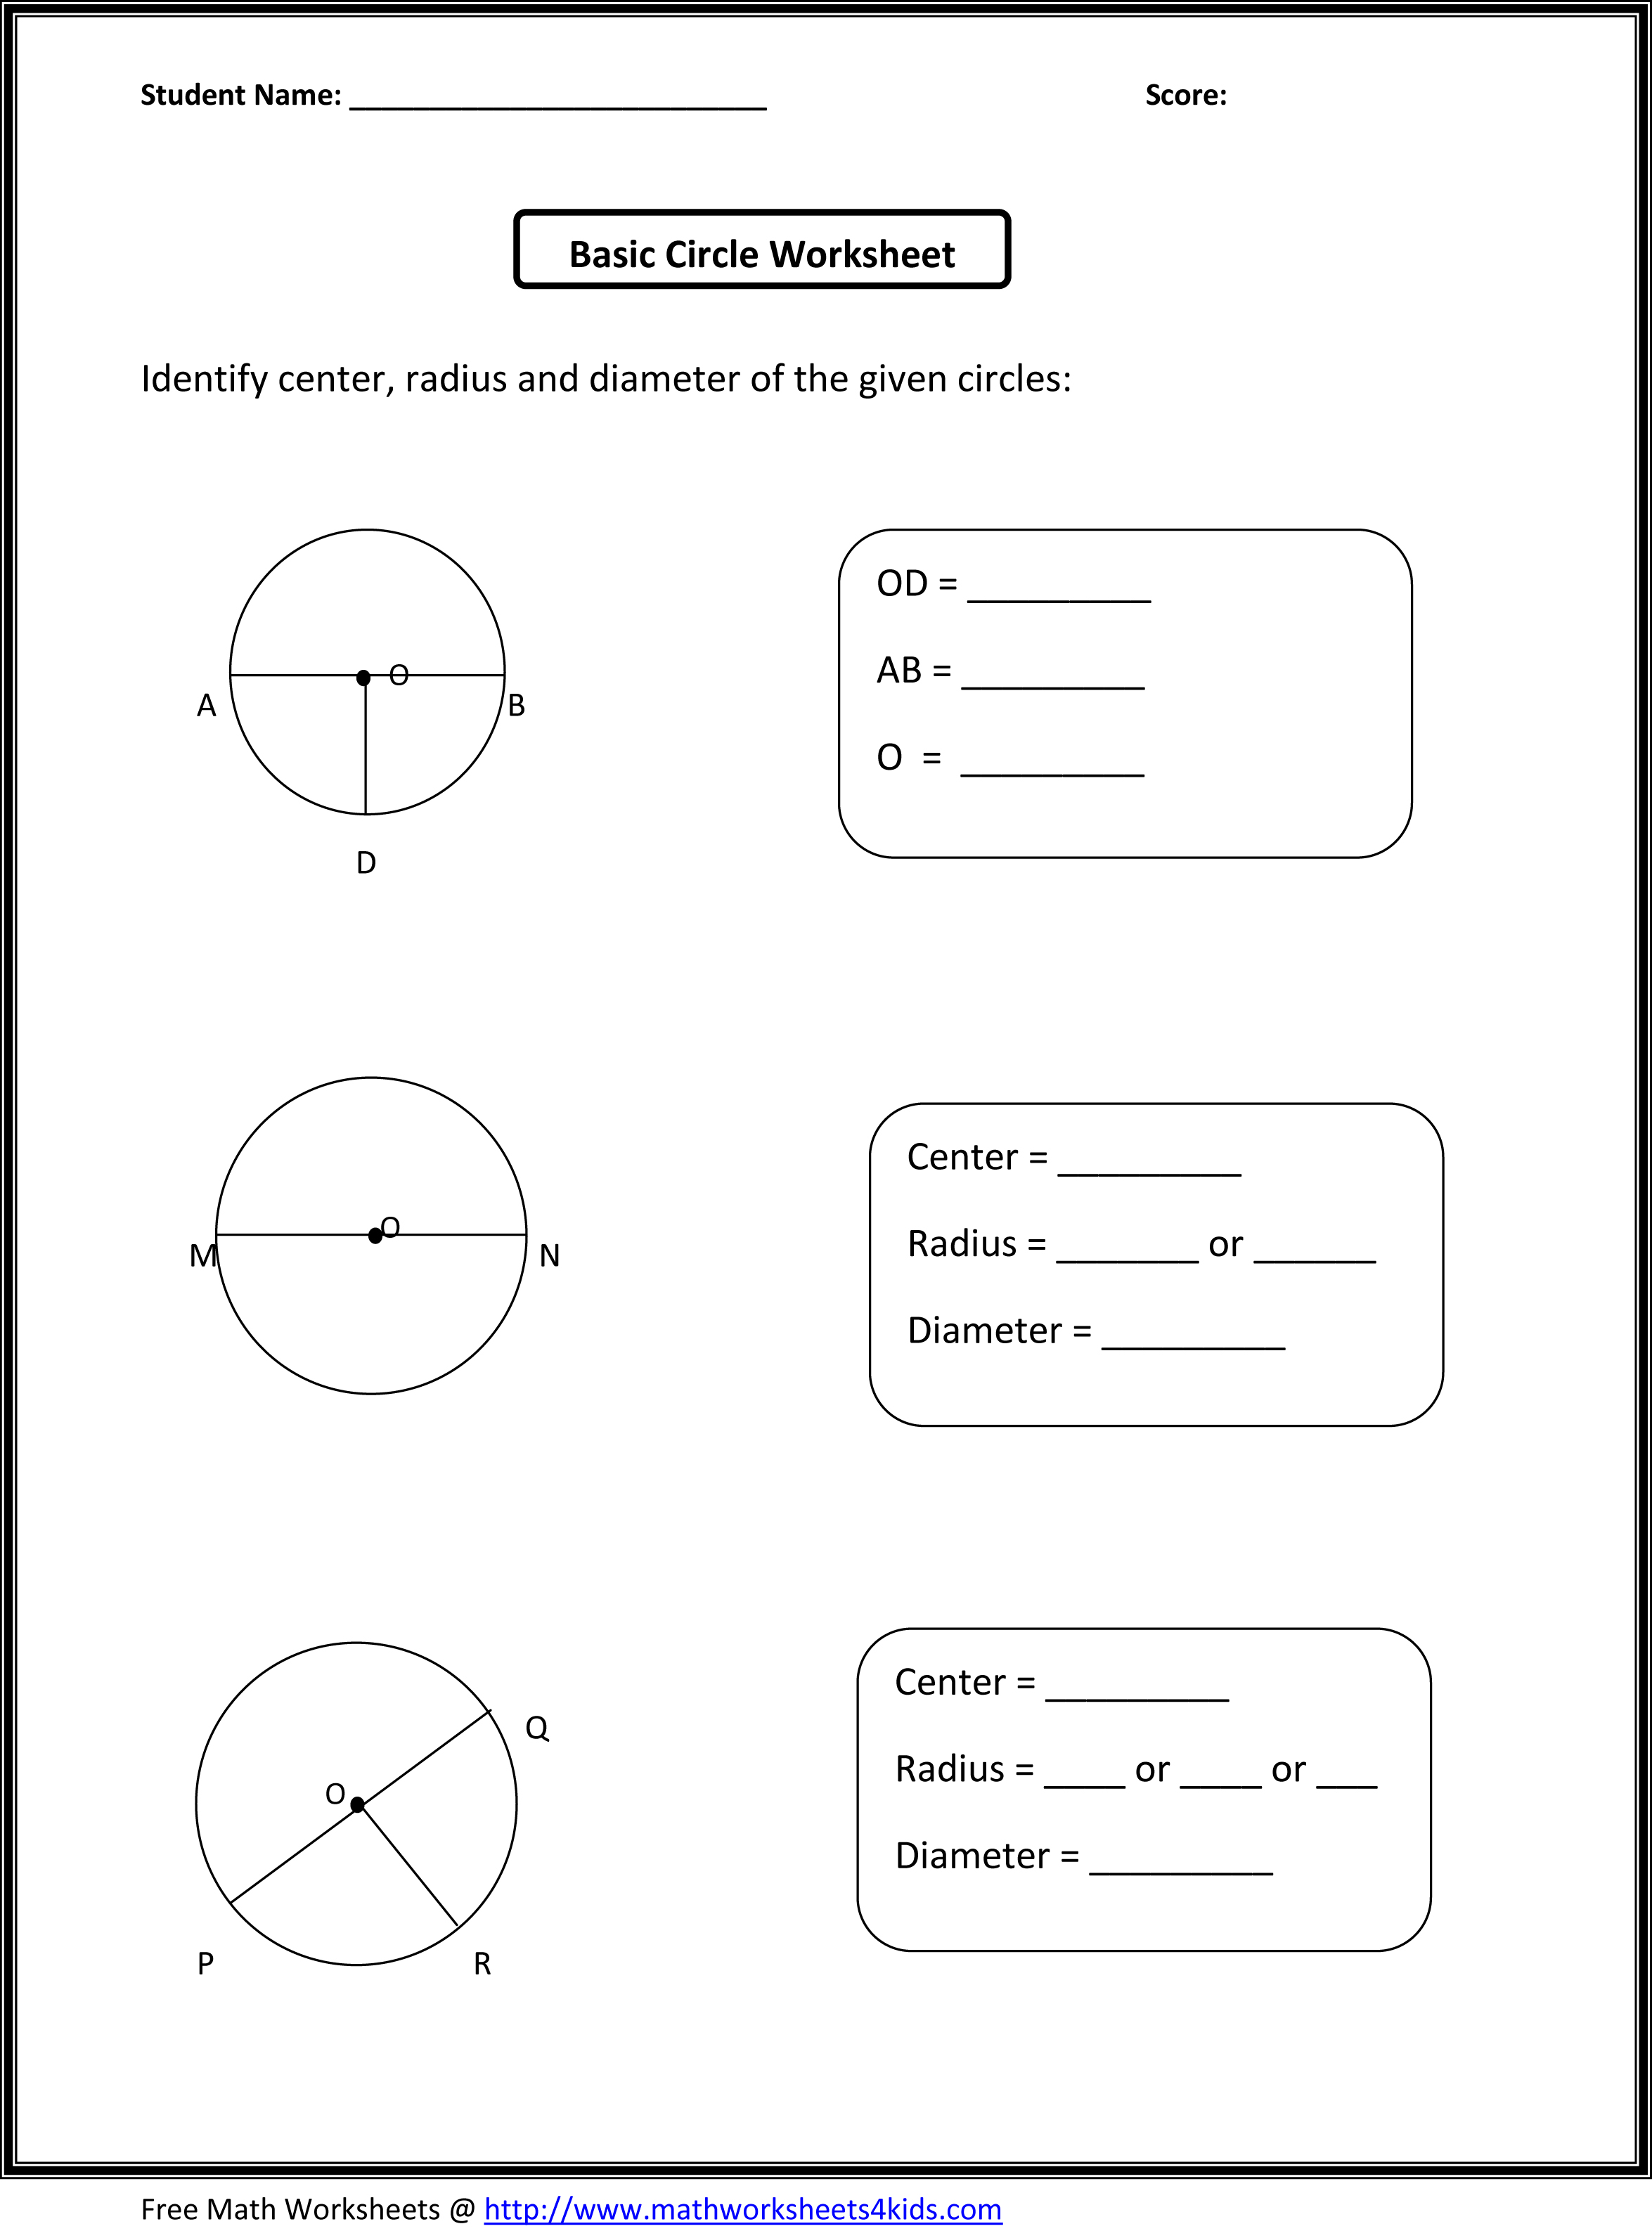 Pie Graph Worksheets 7th Grade Pie Graph Worksheets 7th